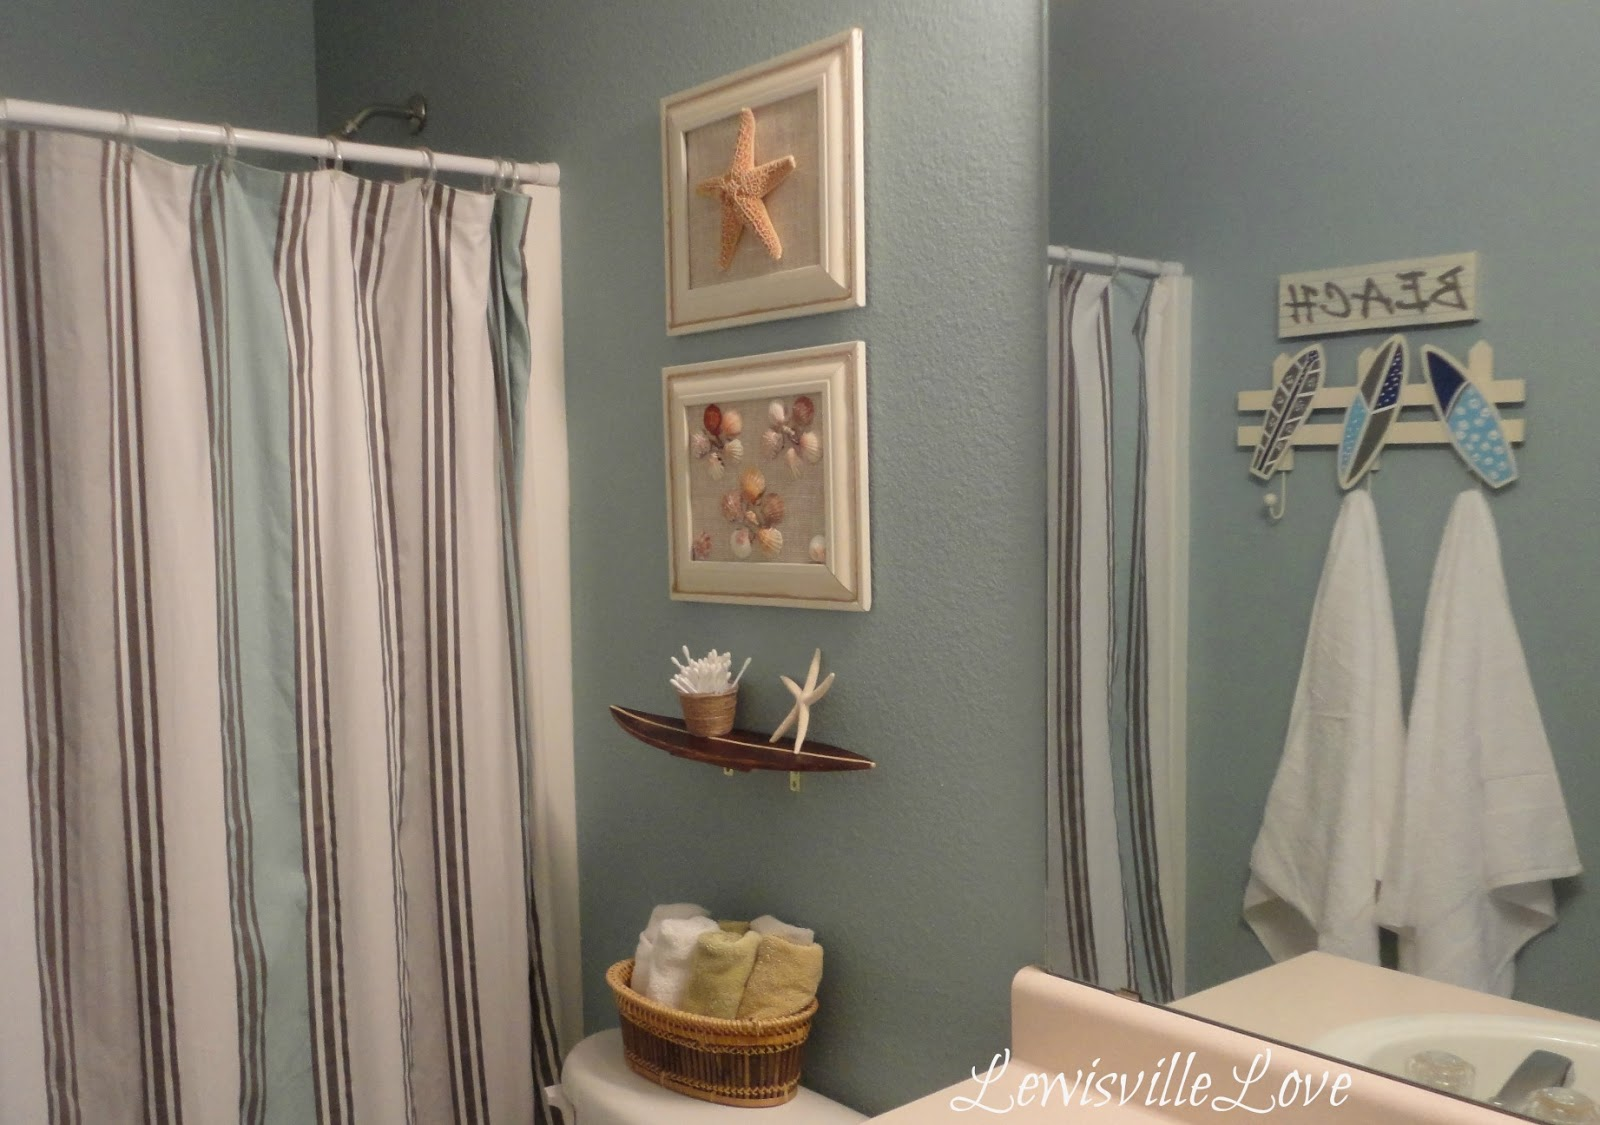 Kids Ocean Bathroom Decor Lewisville Love Beach Theme Bathroom Reveal